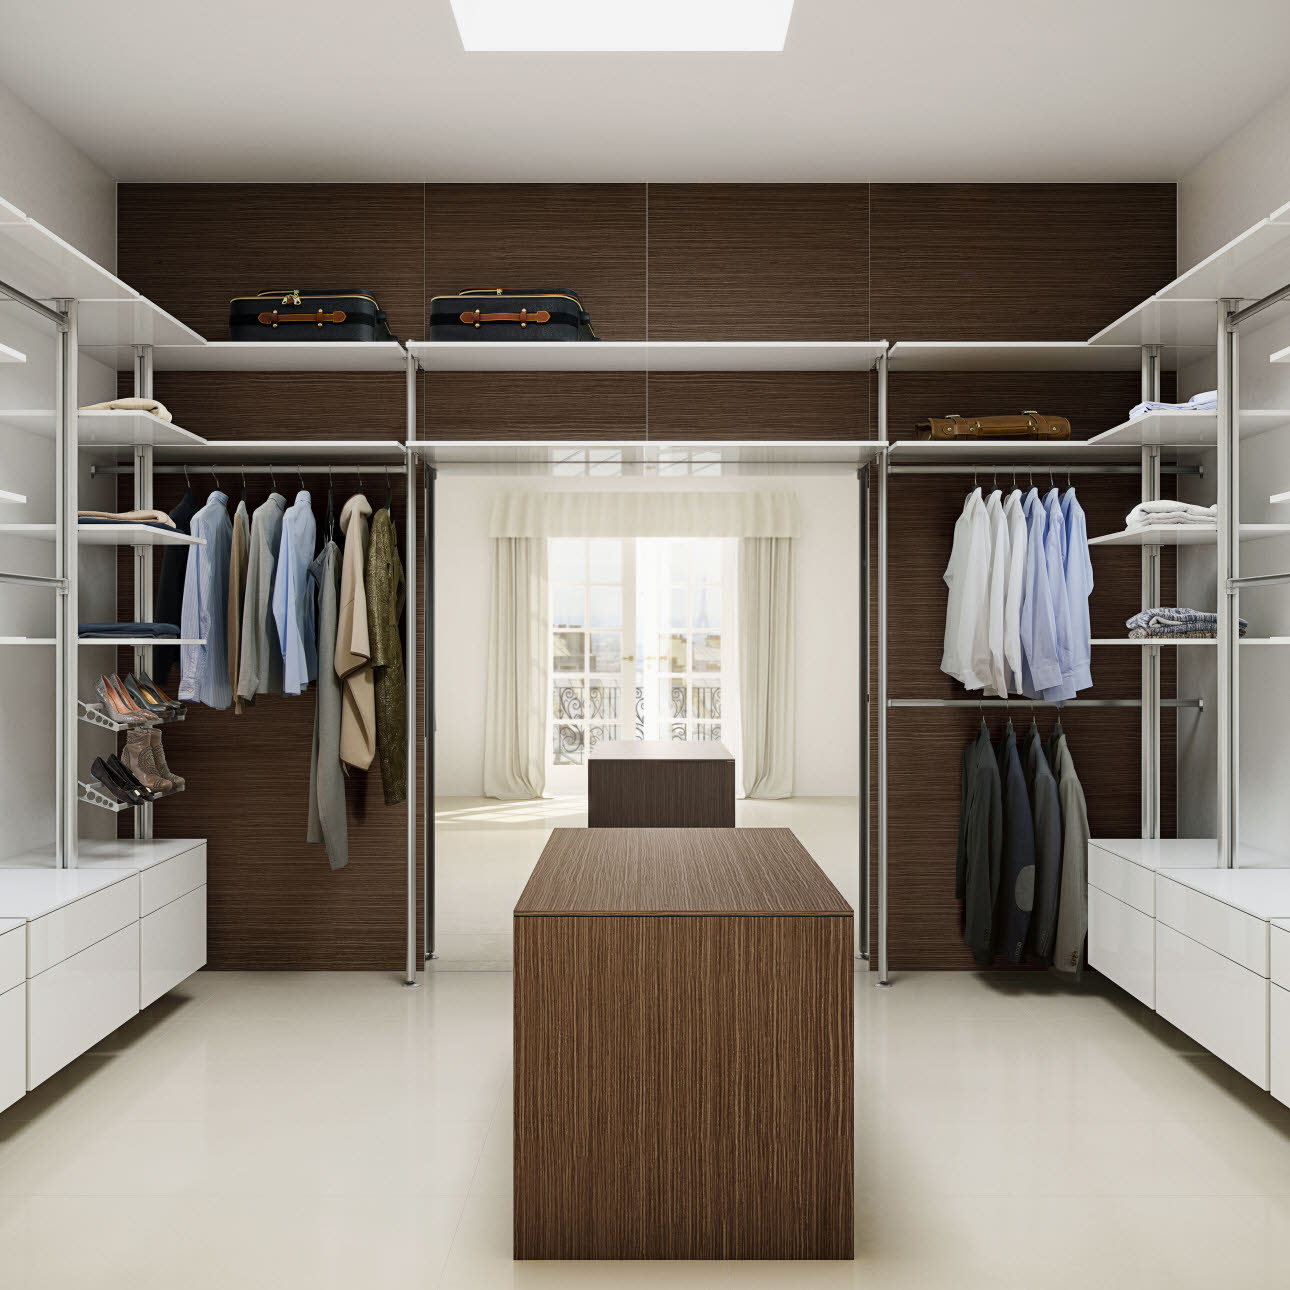 garderobe inspirasjon til walk in closet og garderober uno form. Black Bedroom Furniture Sets. Home Design Ideas